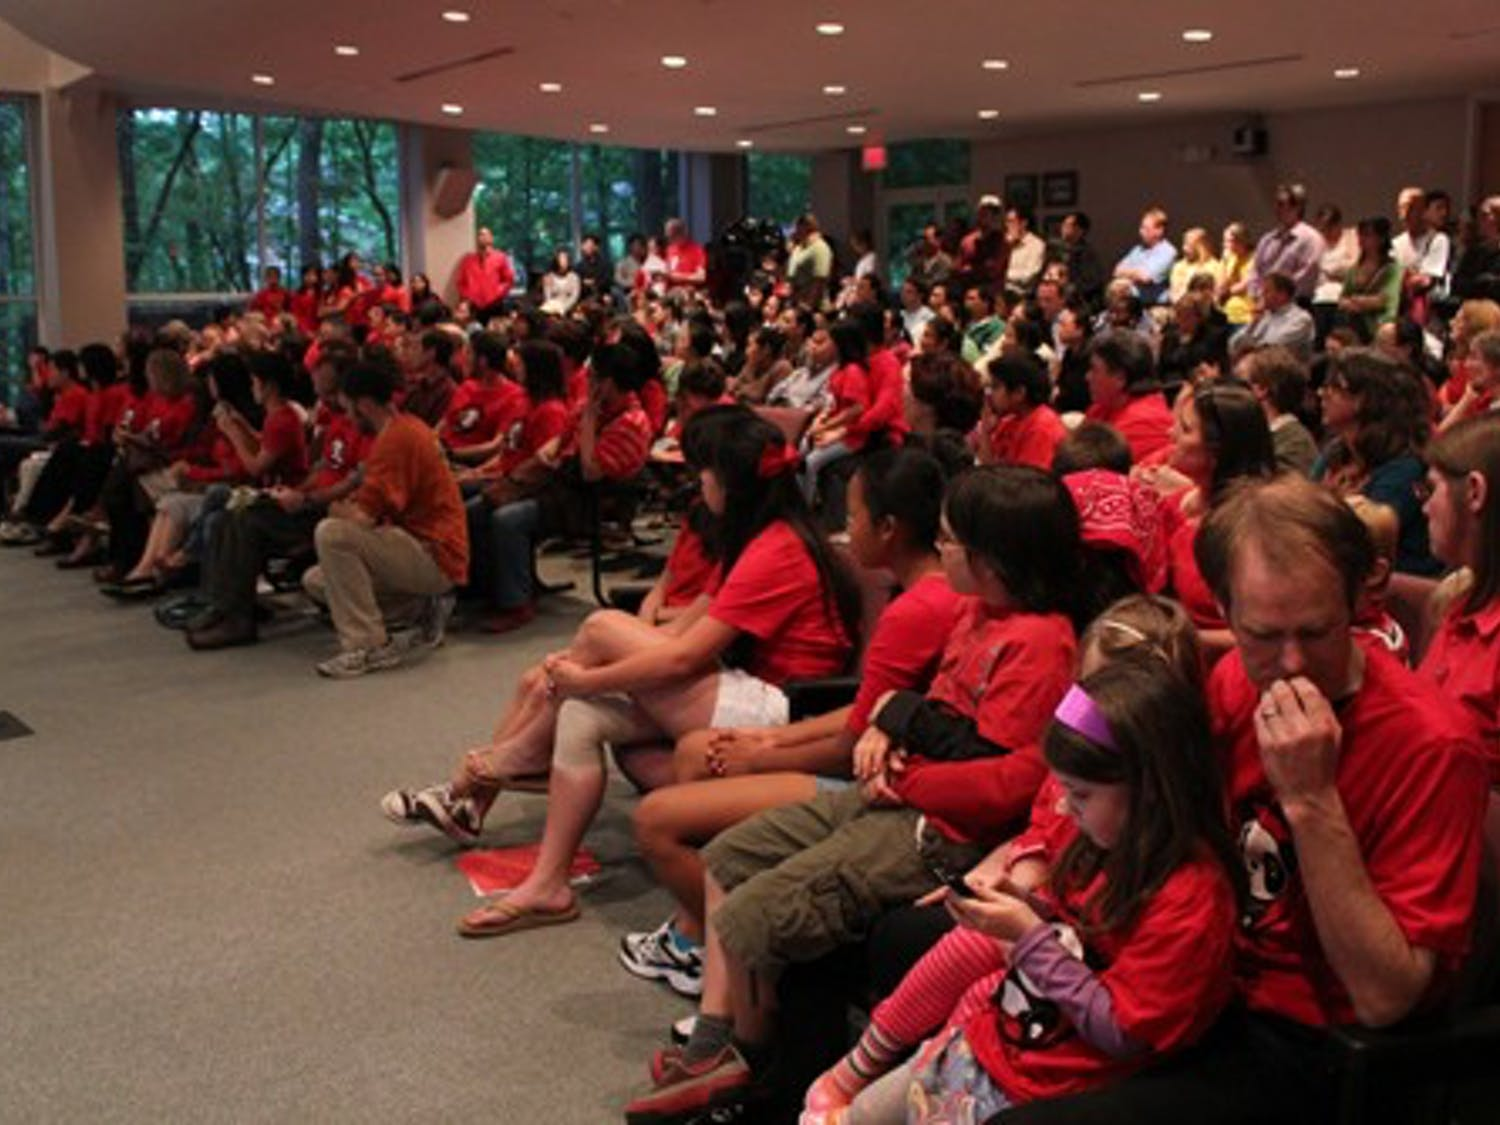 Audience members of the Chapel Hill town meeting on Thursday night wore red t-shirts to show their support for the Chinese dual language program.